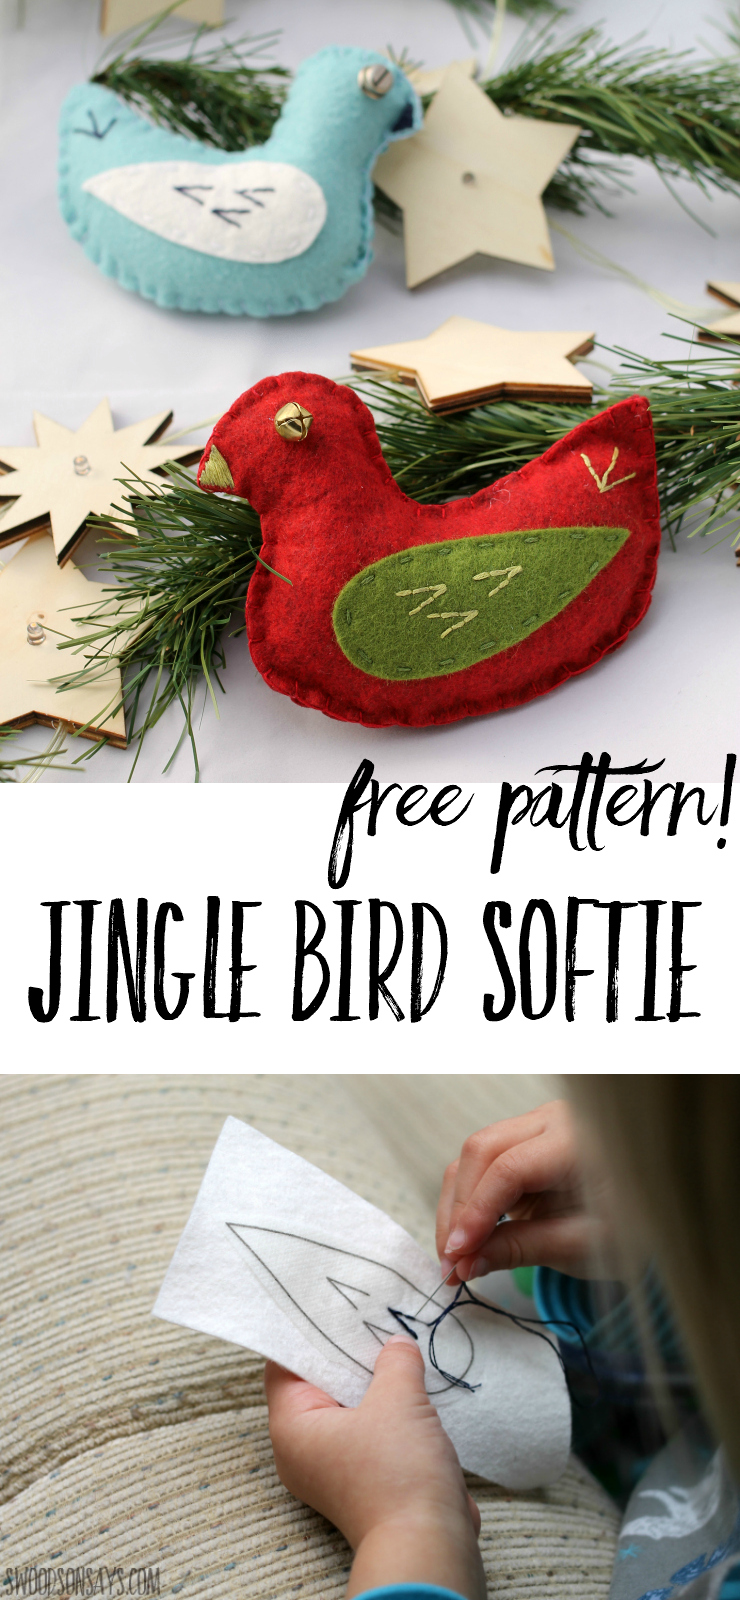 Get cozy this winter and sew a jingle bird! This simple softie is designed for beginner sewists and is perfect for kids to sew. Follow the free pattern to sew a sweet little bird to snuggle or hang on the tree! #softiepattern #diyornament #sewingforkids